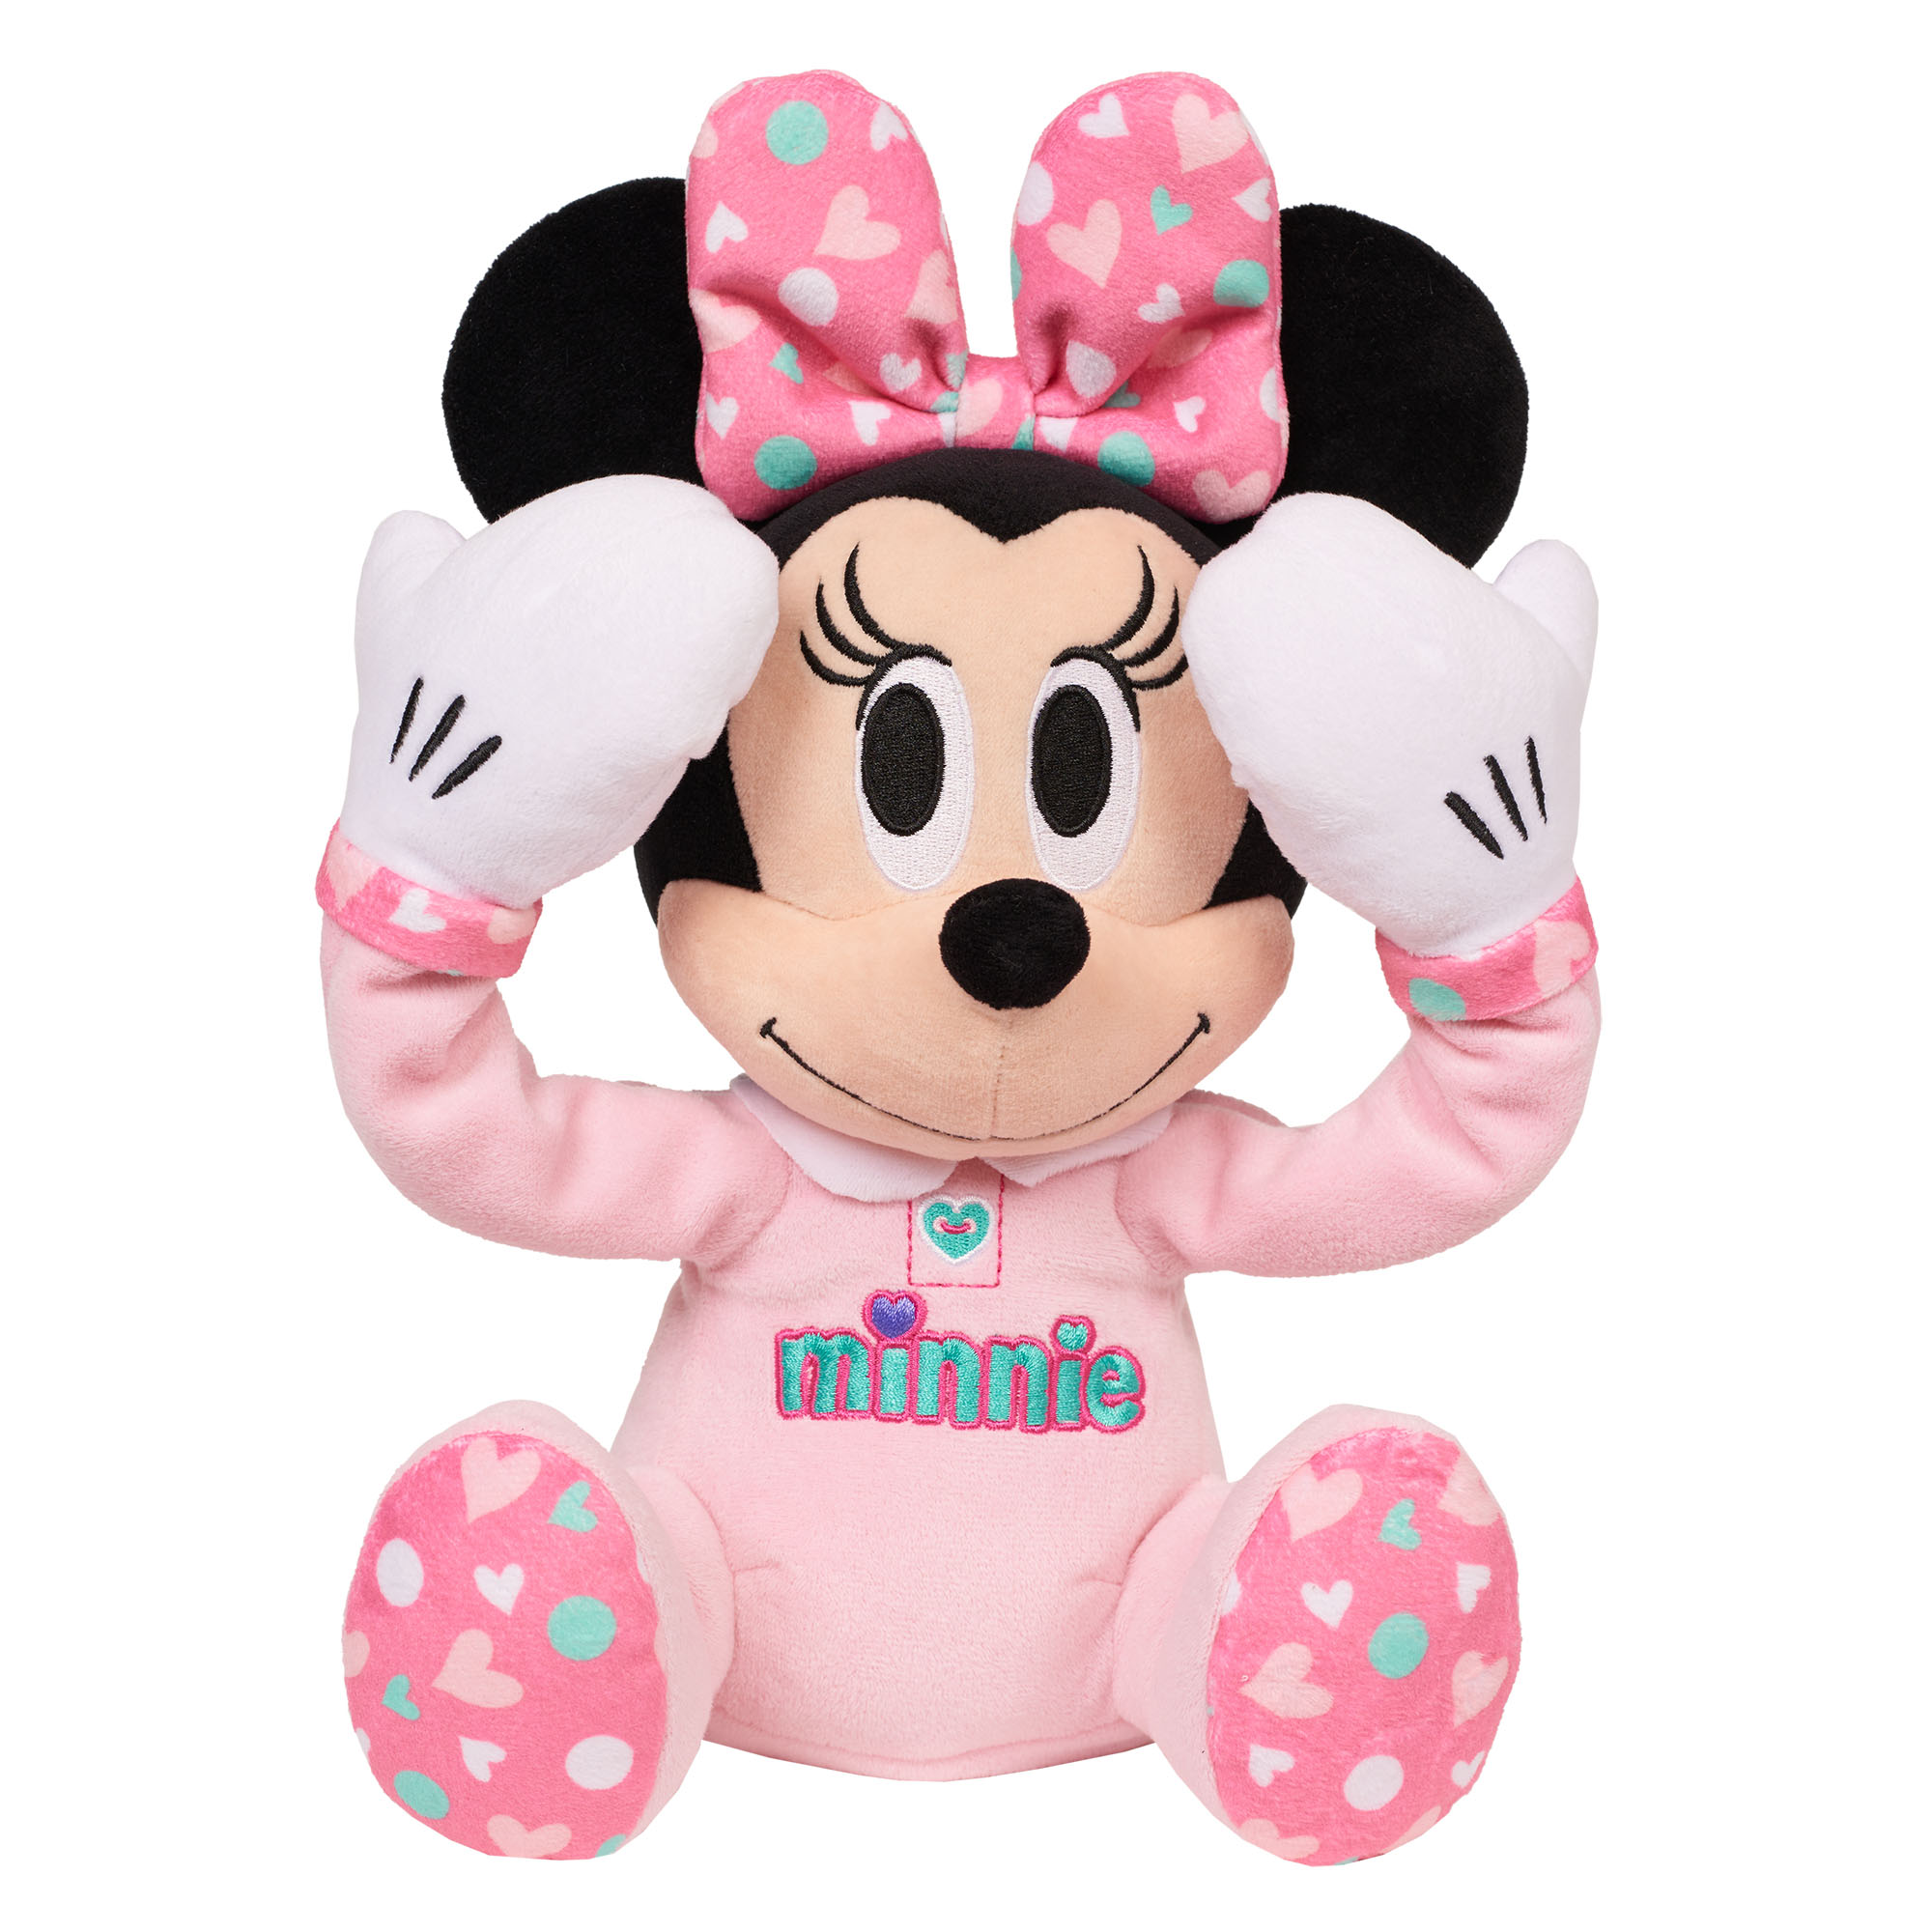 Disney Baby Peek-A-Boo Plush Minnie Mouse by Just Play